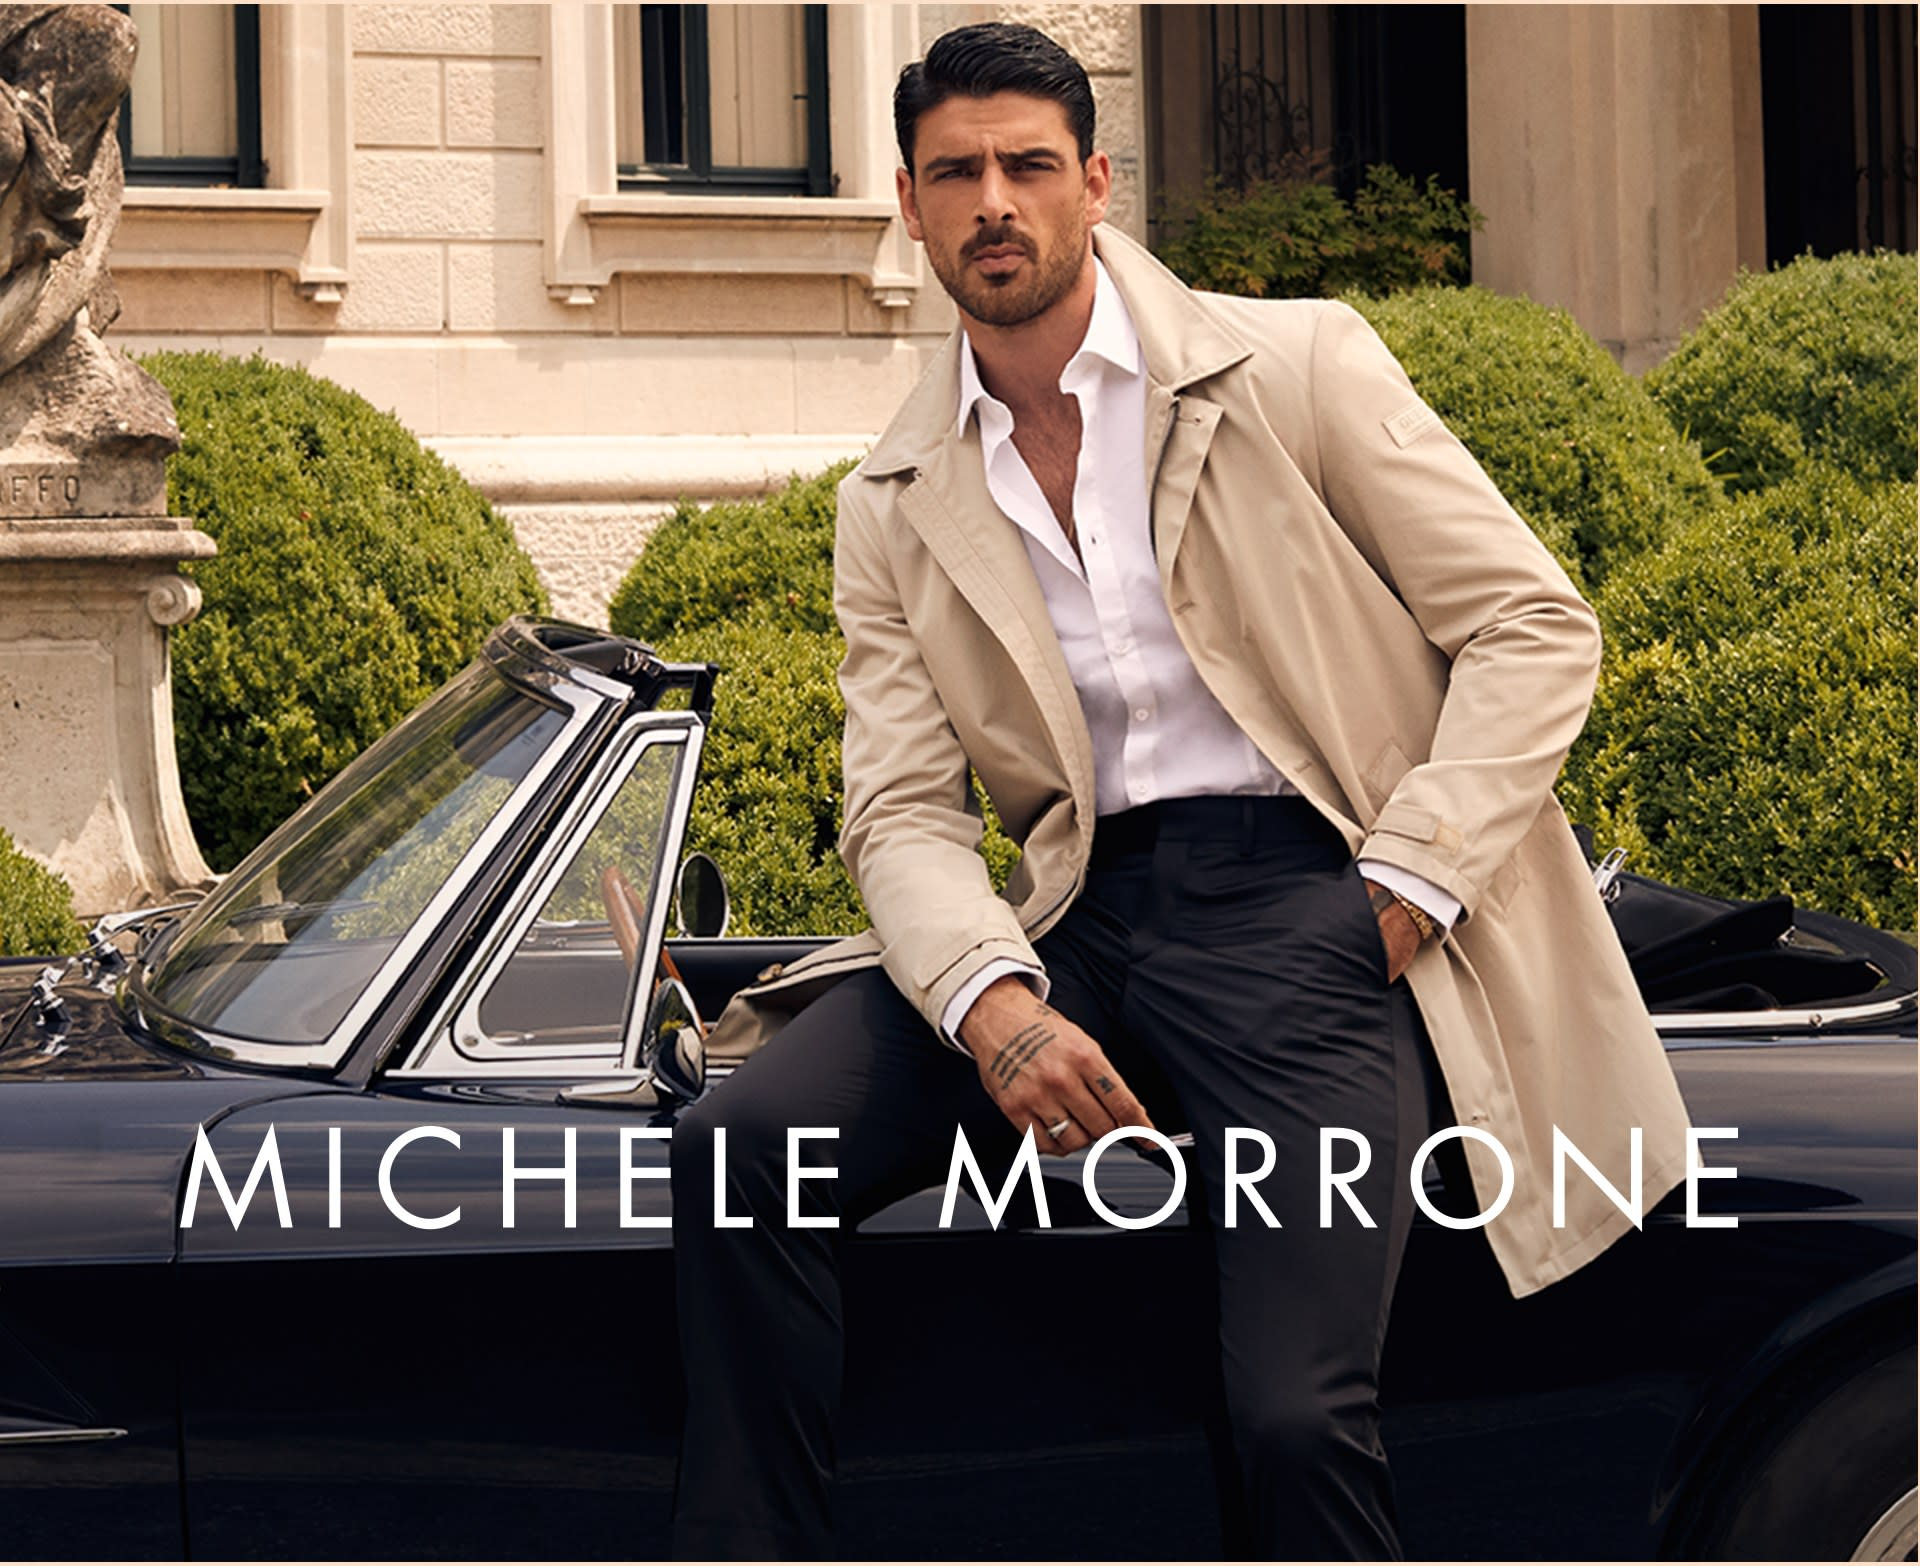 Michele Morrone for men